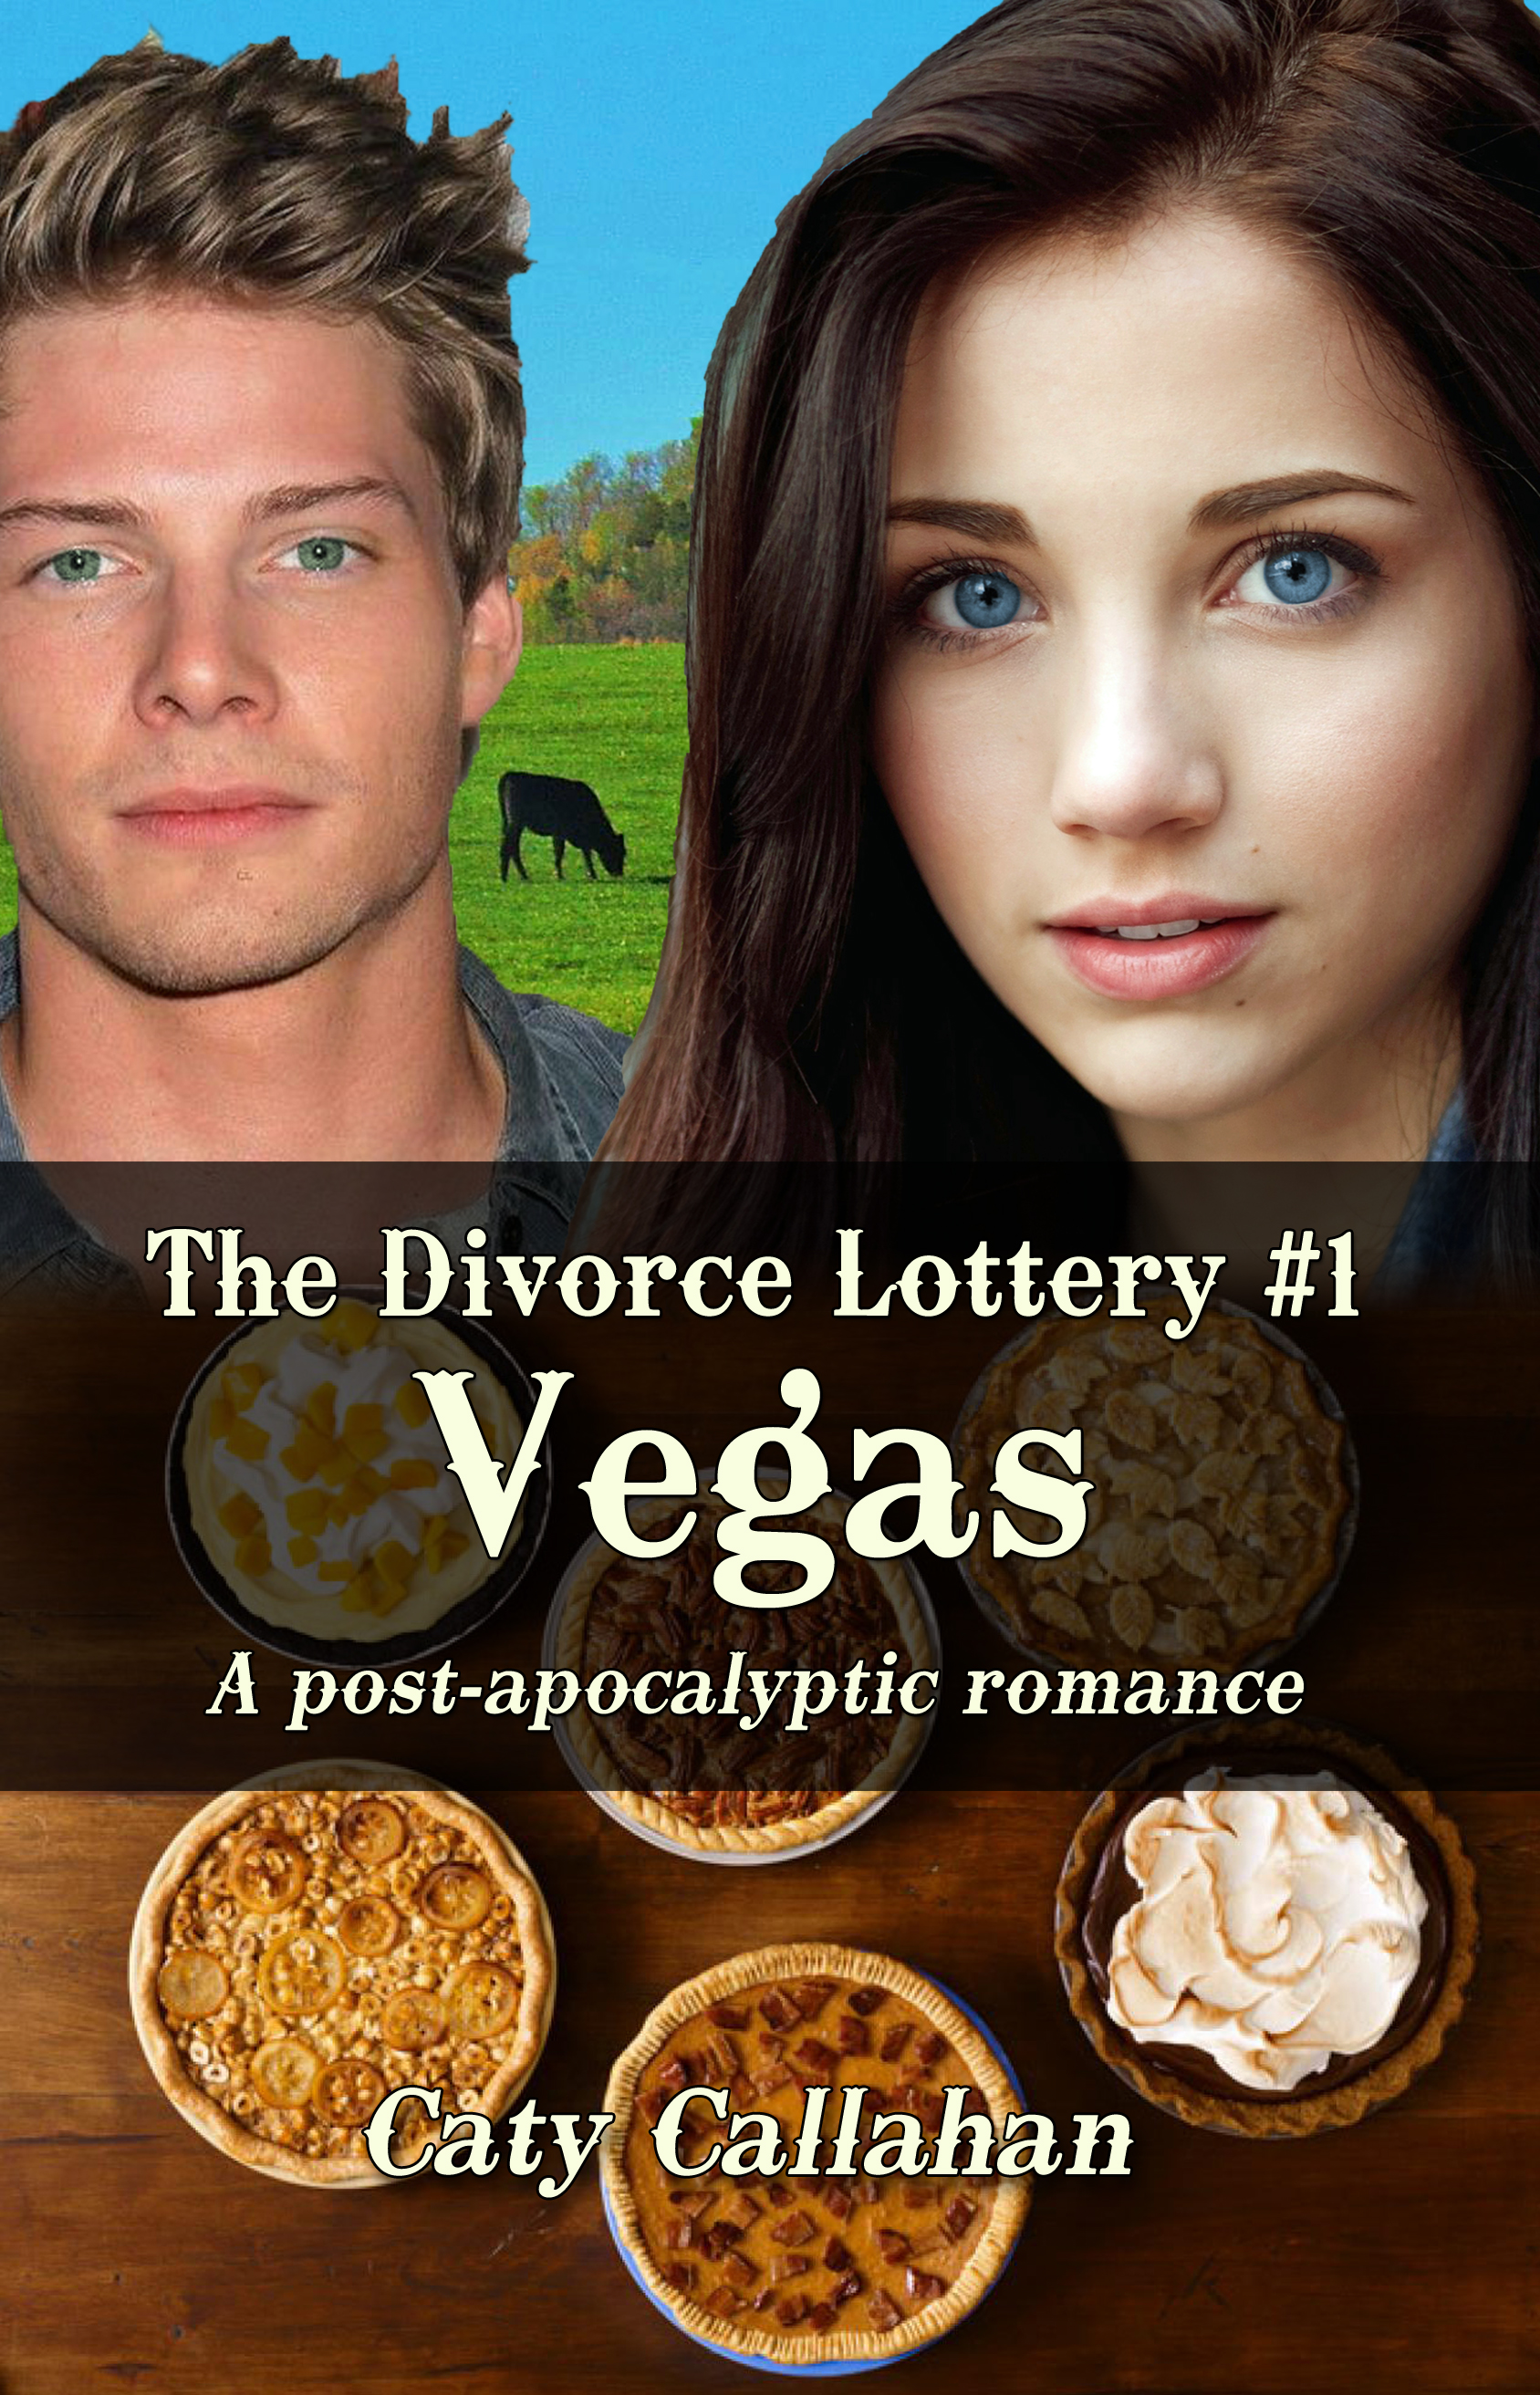 Divorce Lotery 1 Vegas | Sweet Christian romances for couples